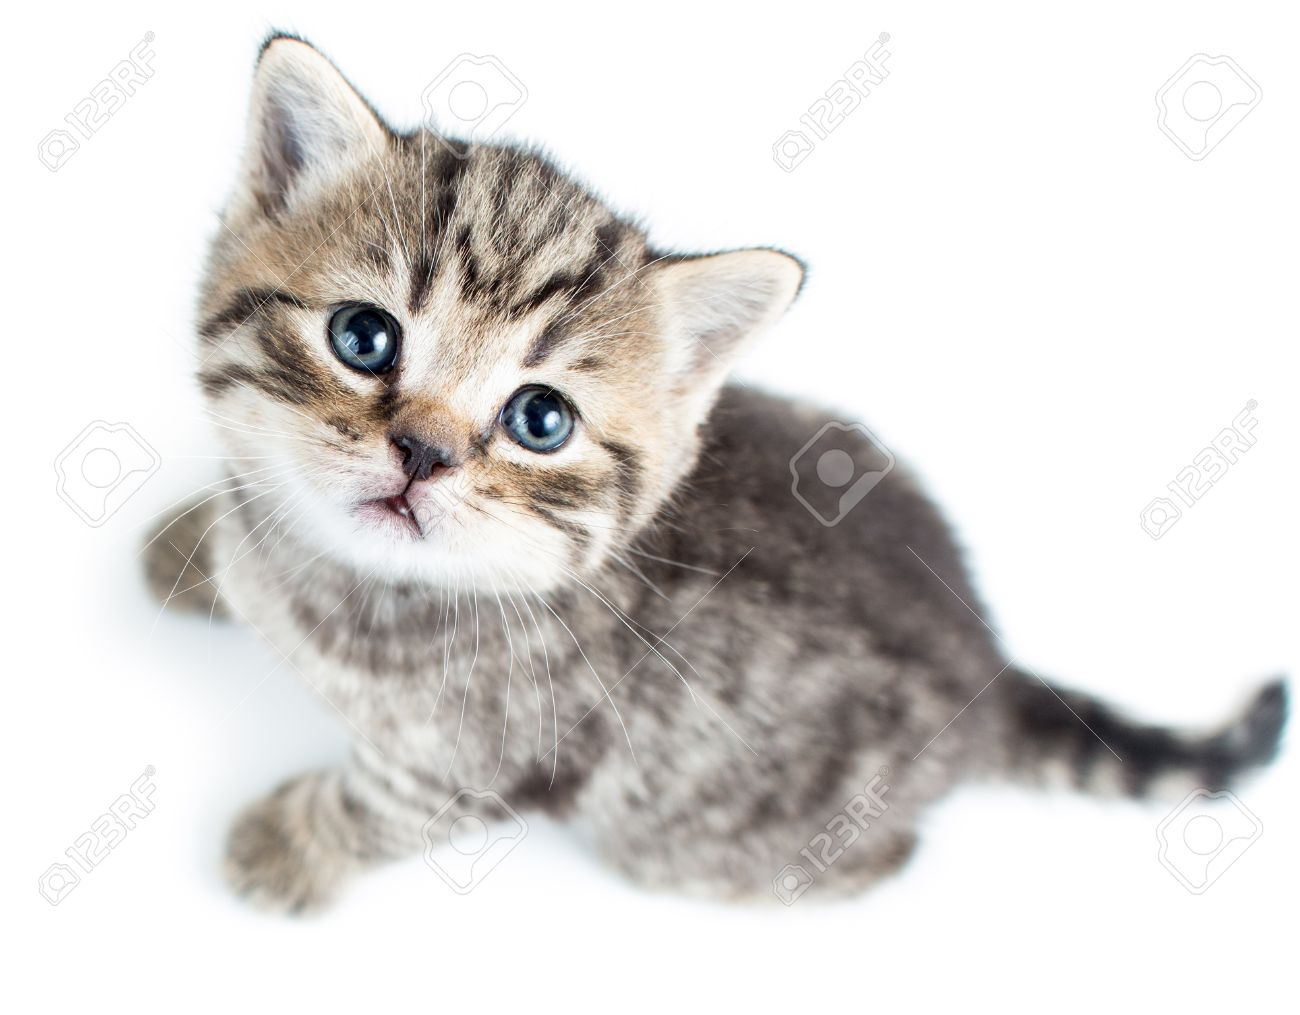 Top view of baby cat kitten on white background stock photo picture stock photo top view of baby cat kitten on white background thecheapjerseys Images